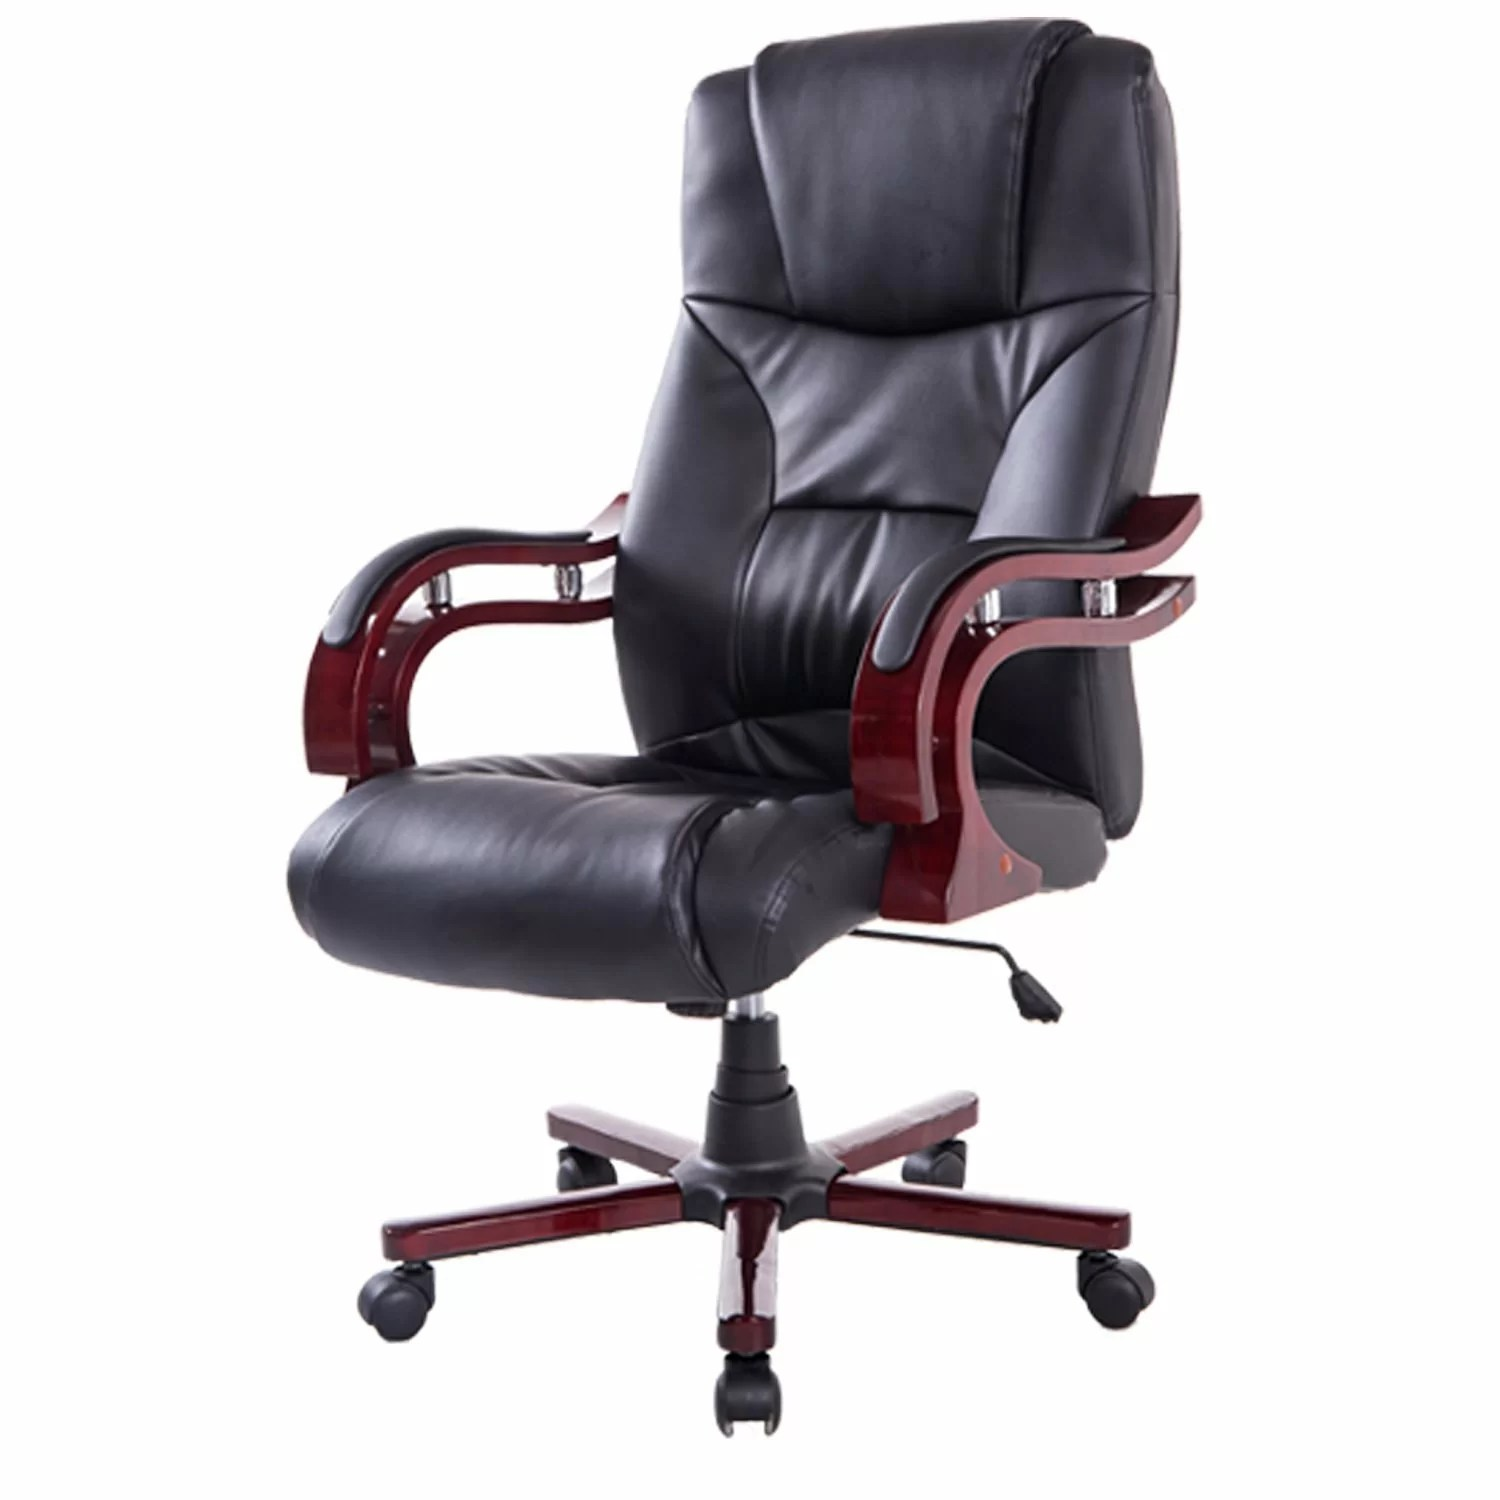 Executive Chair Homcom High Back Executive Office Chair Wayfair Uk